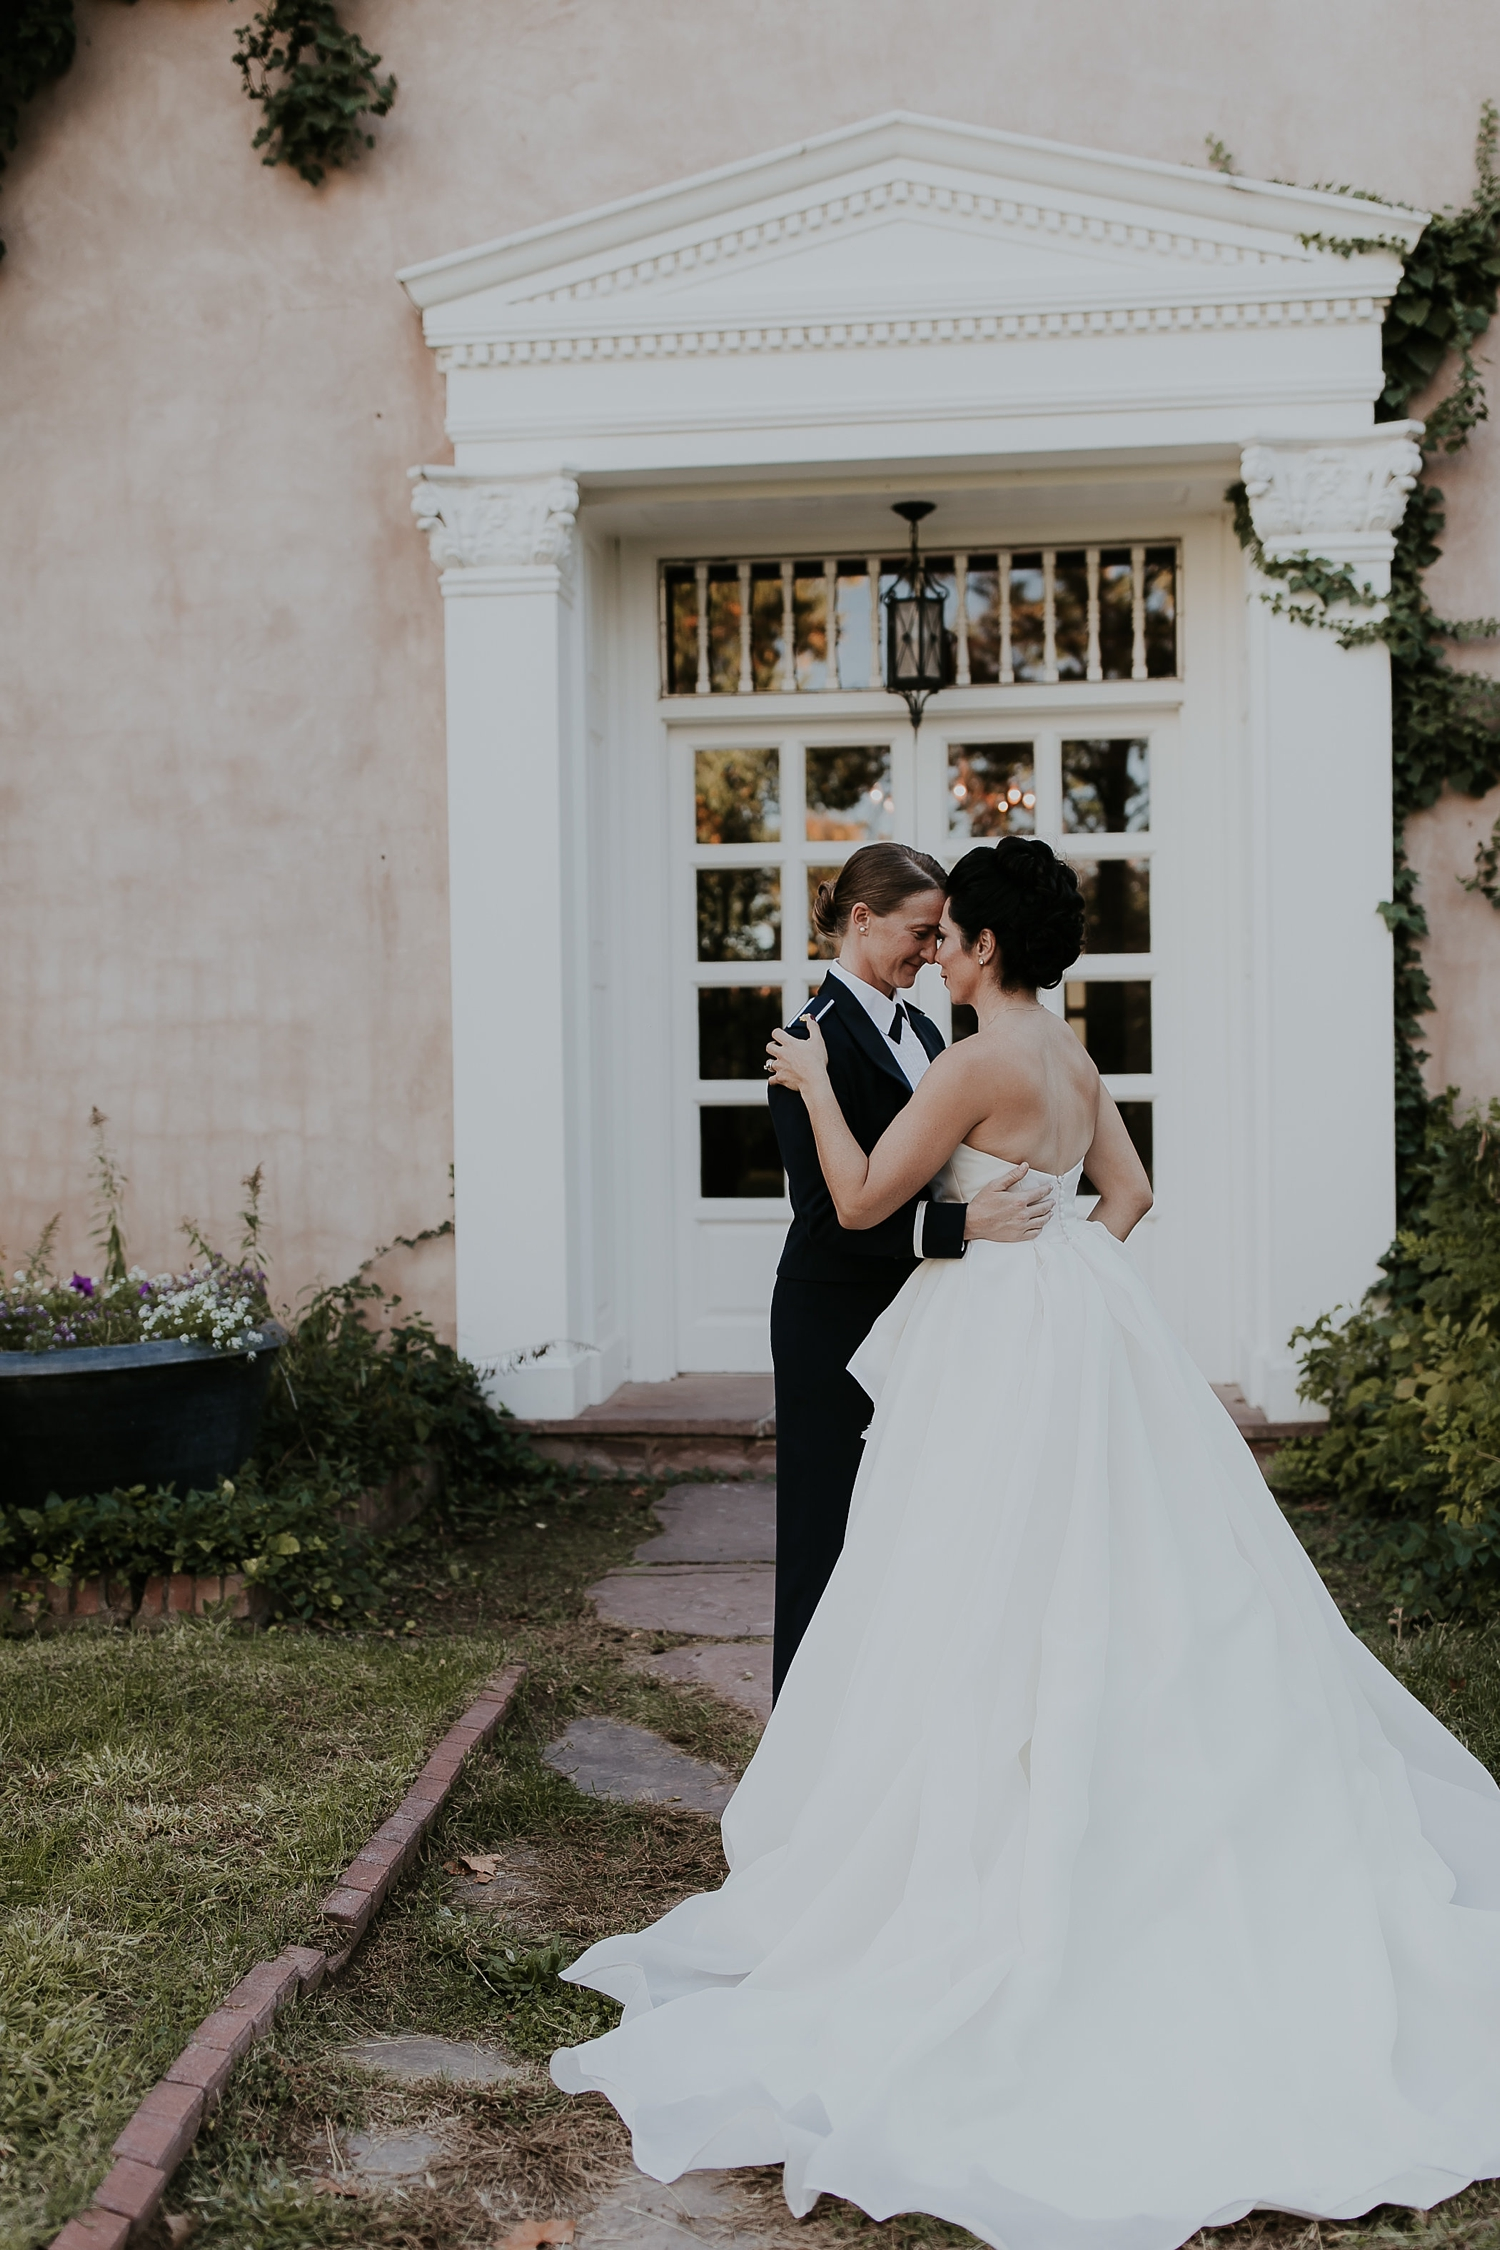 Alicia+lucia+photography+-+albuquerque+wedding+photographer+-+santa+fe+wedding+photography+-+new+mexico+wedding+photographer+-+los+poblanos+wedding+-+los+poblanos+fall+wedding+-+los+poblanos+october+wedding_0095.jpg